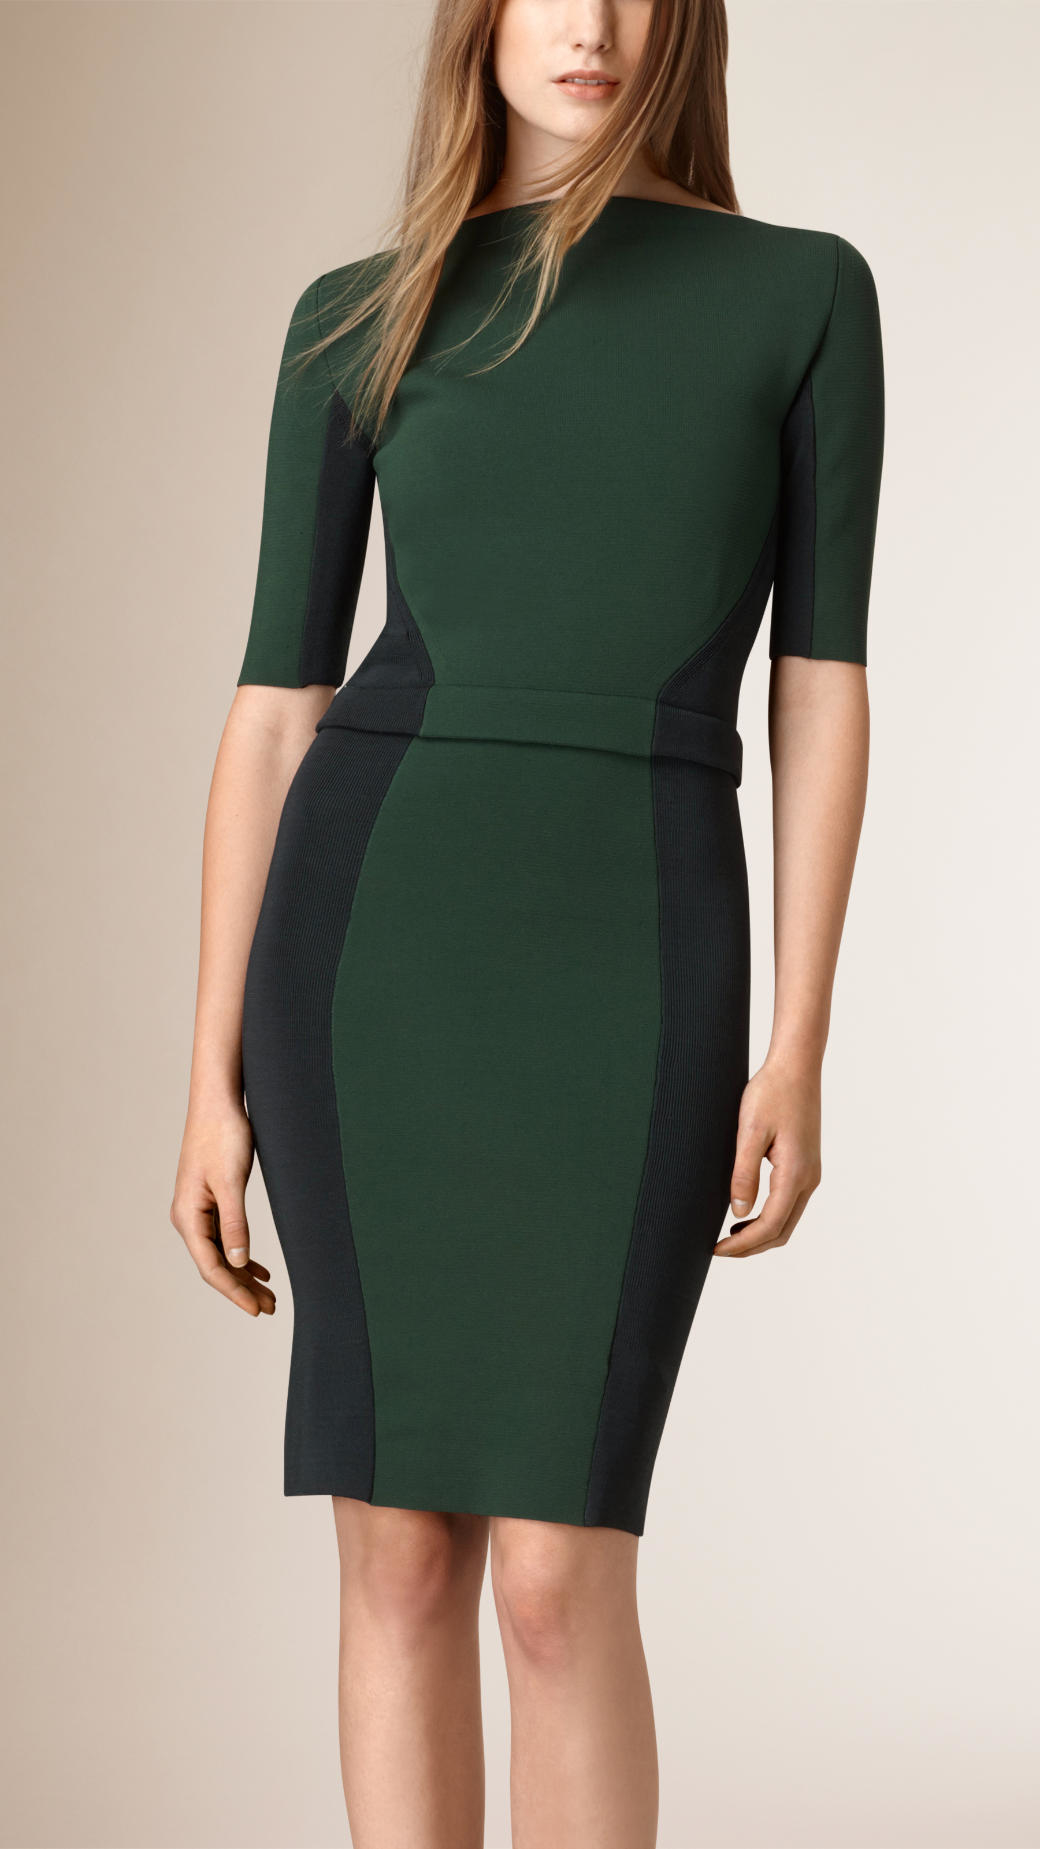 Paneled stretch dress in color block dresses for women